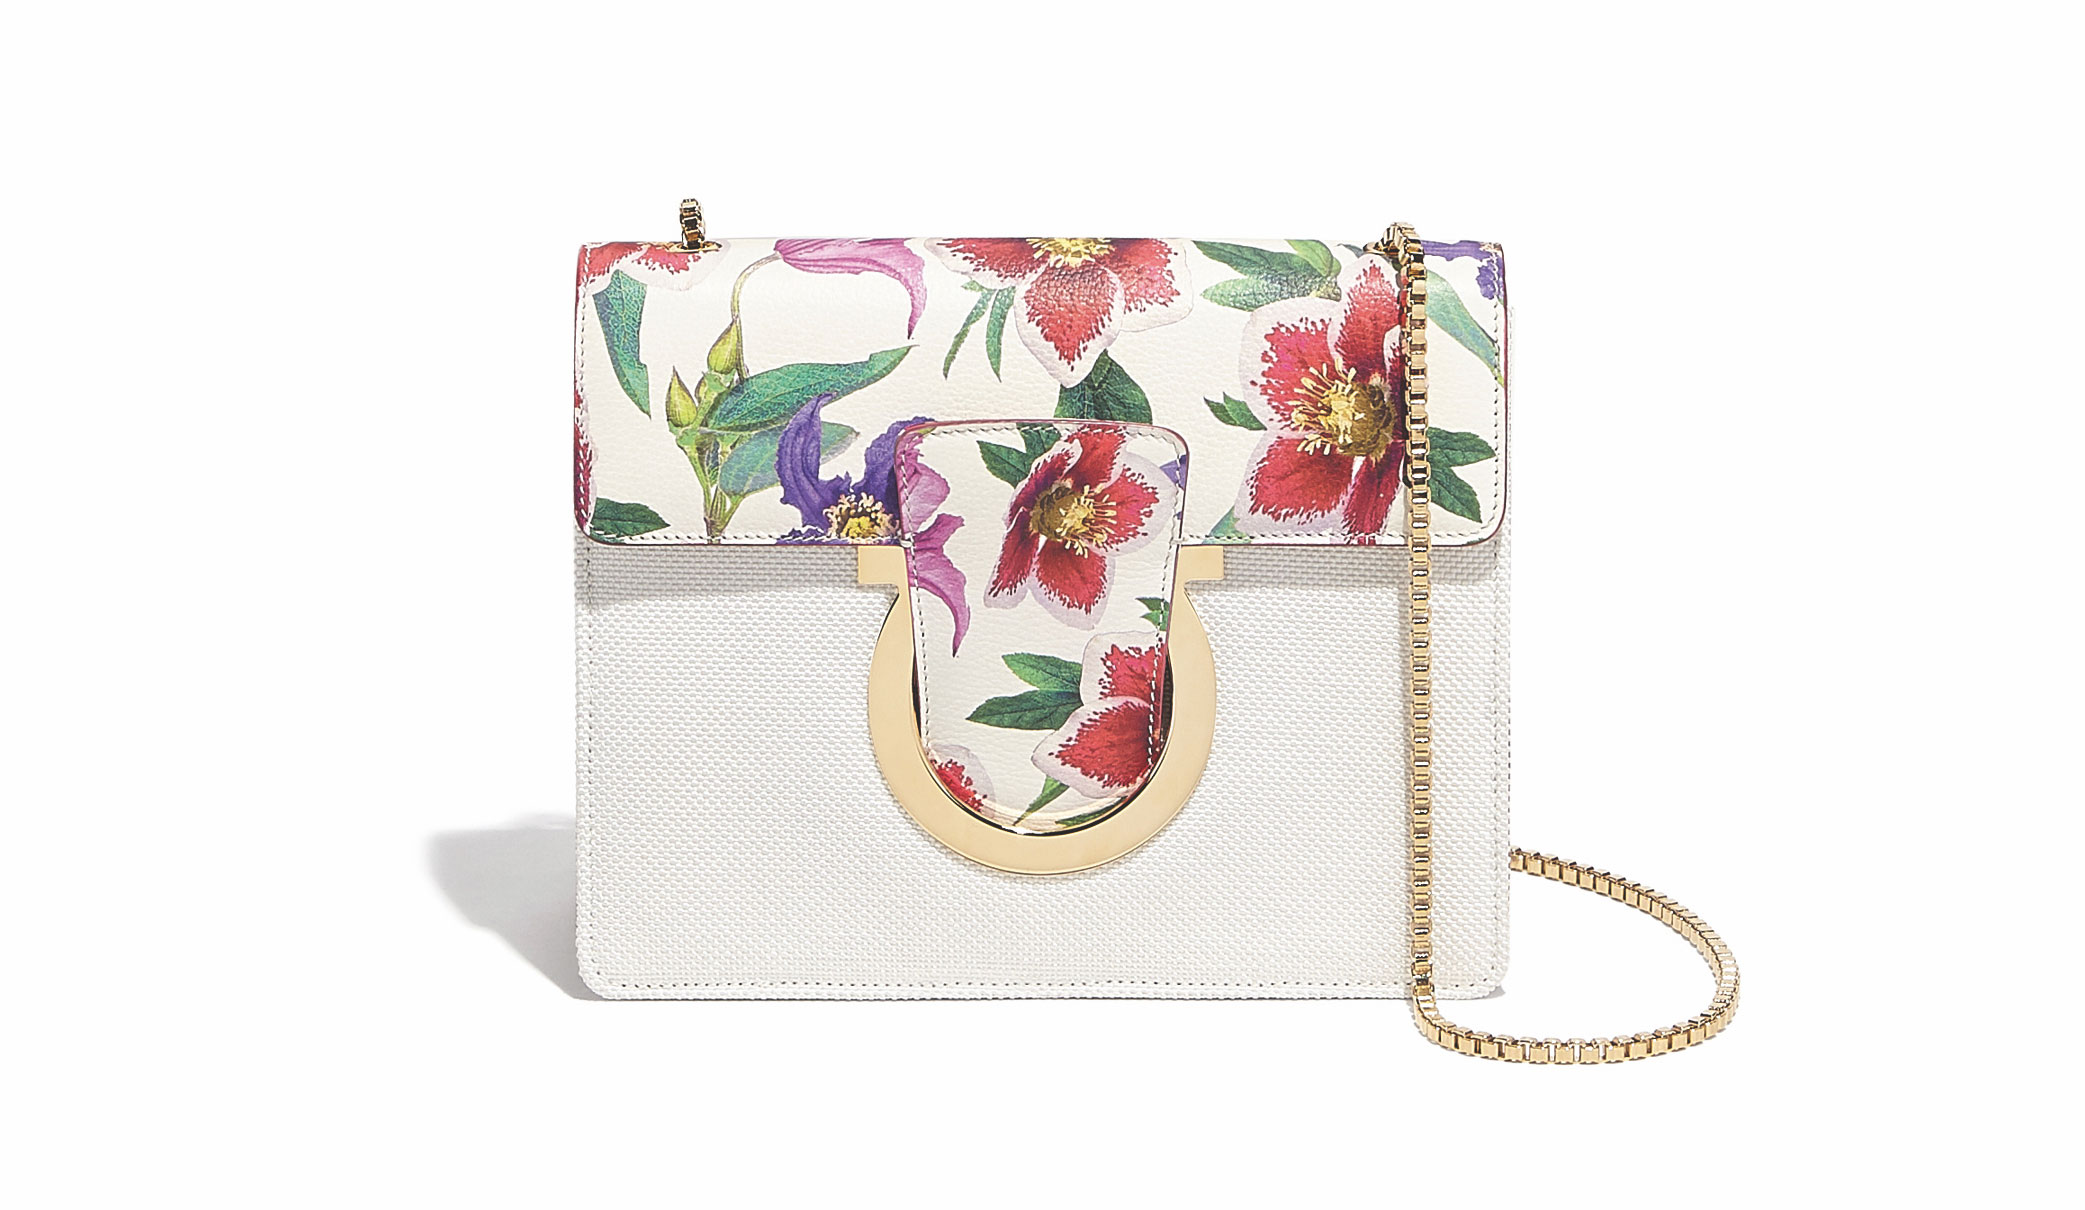 A handbag from the new collection